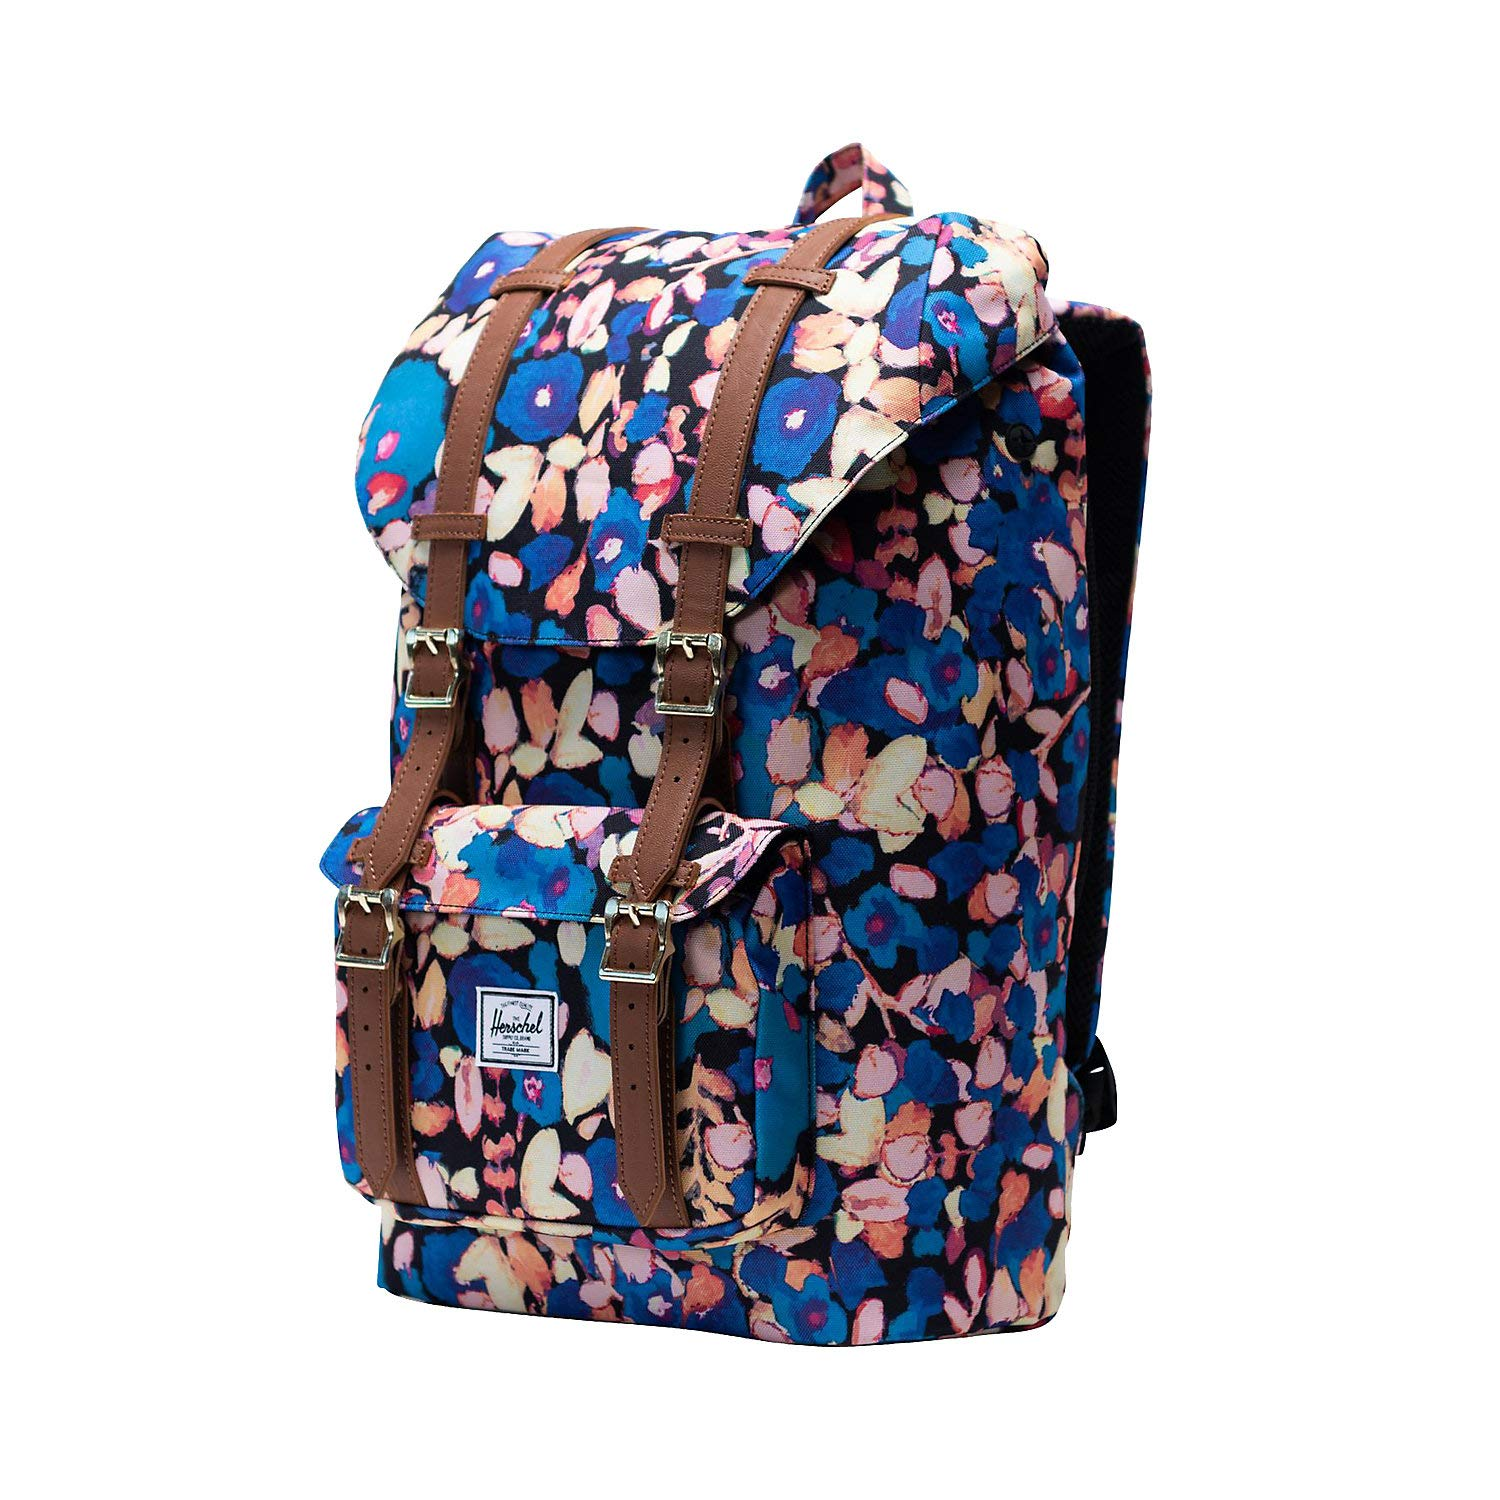 Herschel Supply Co. バックパック  Painted Floral/Tan Synthetic Leather B07DYTJN4Z